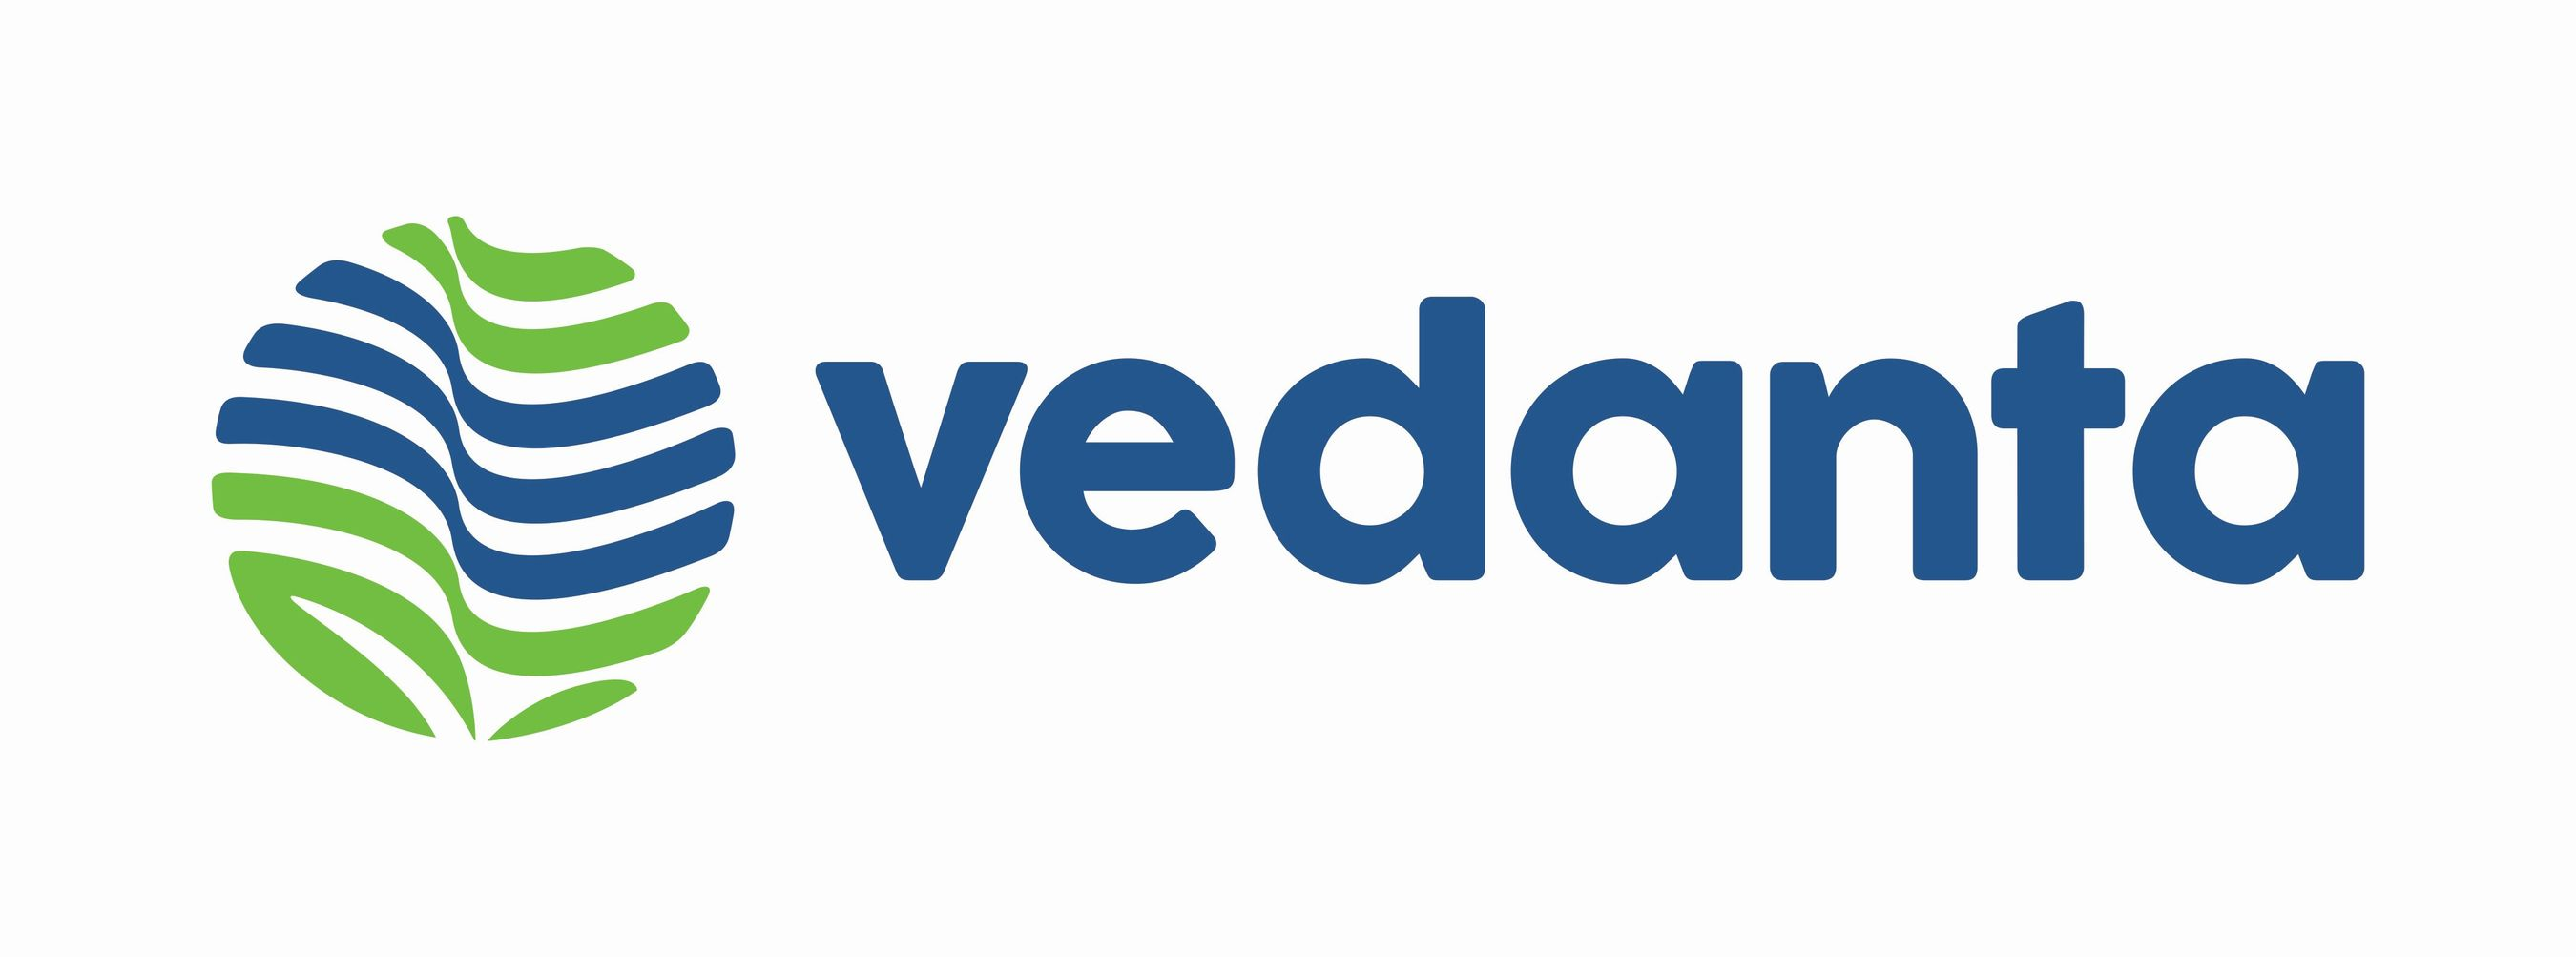 Vedanta Limited: Notice of Results for the Third Quarter and Nine Months Ended 31 December 2015